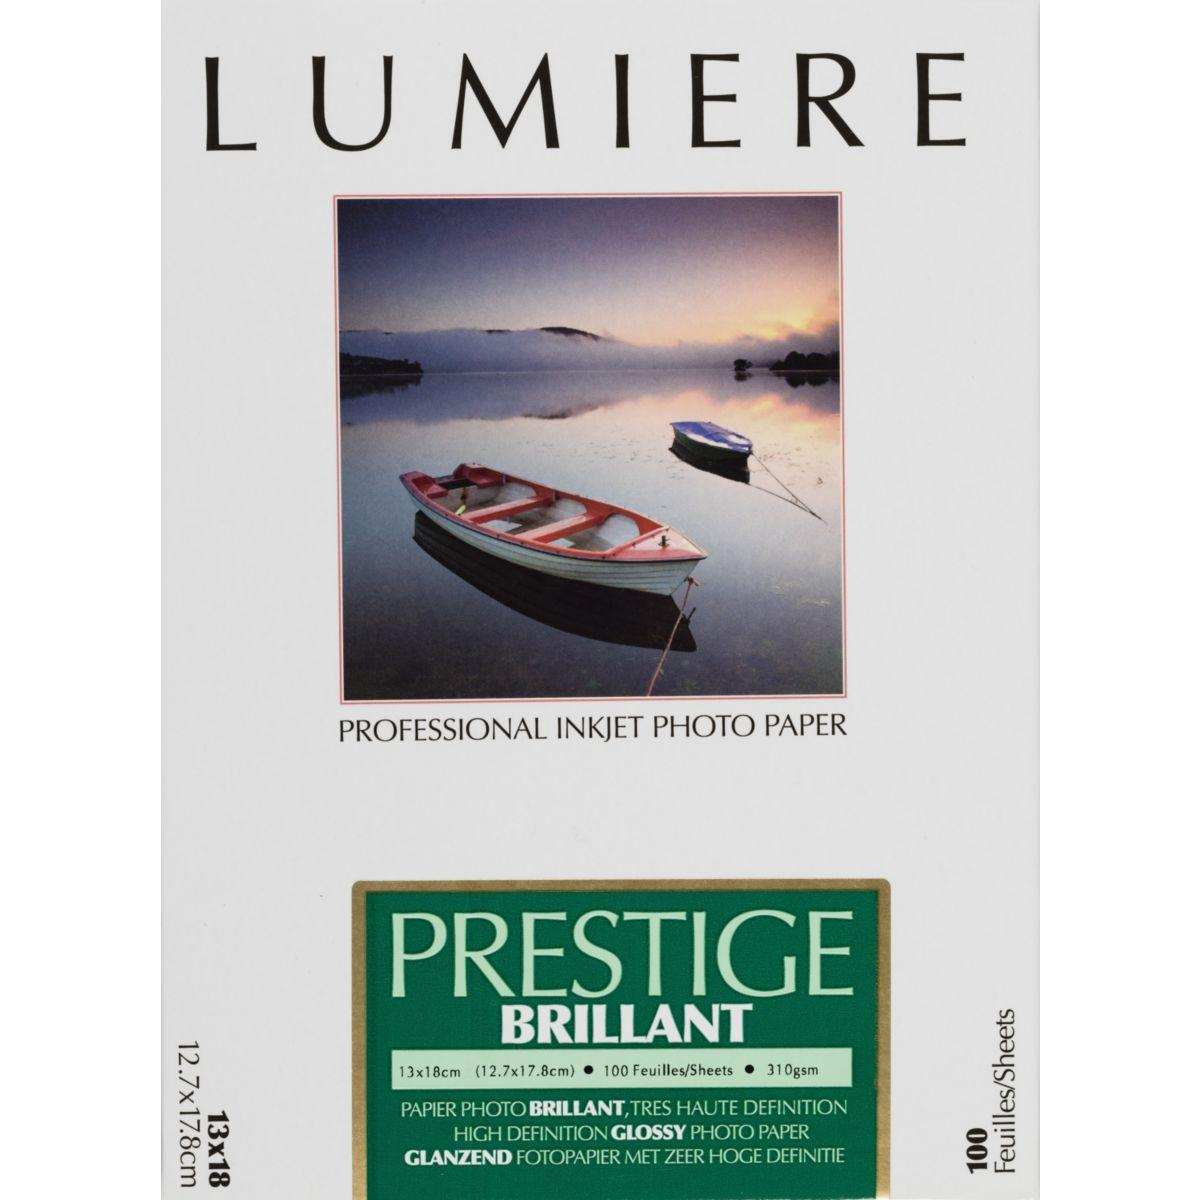 Papier photo lumiere prestige brillant 100f 12,7x17,8 310g - 2% de remise imm�diate avec